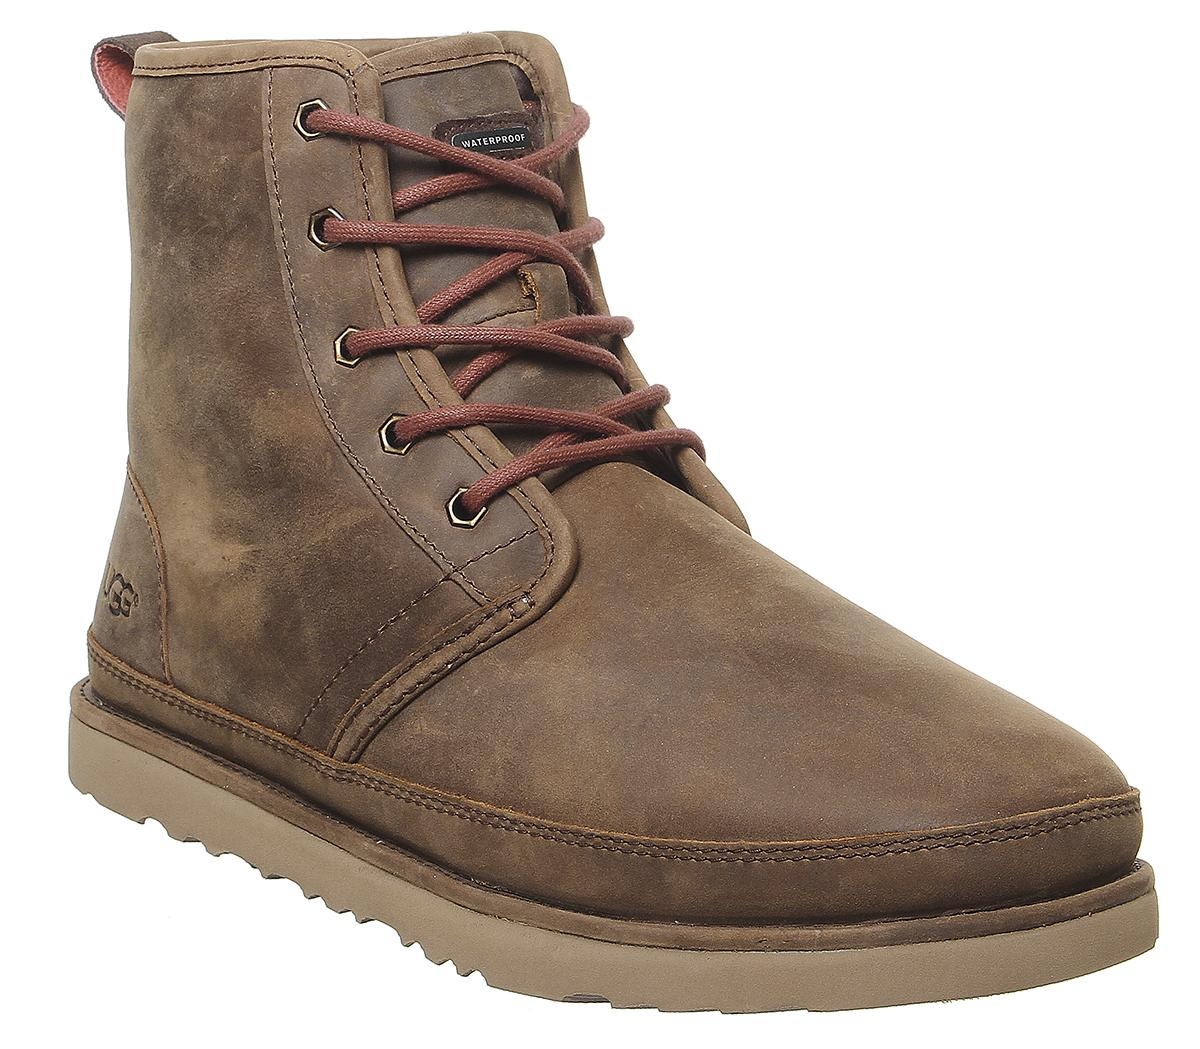 UGG Harkley Waterproof Boots Grizzly